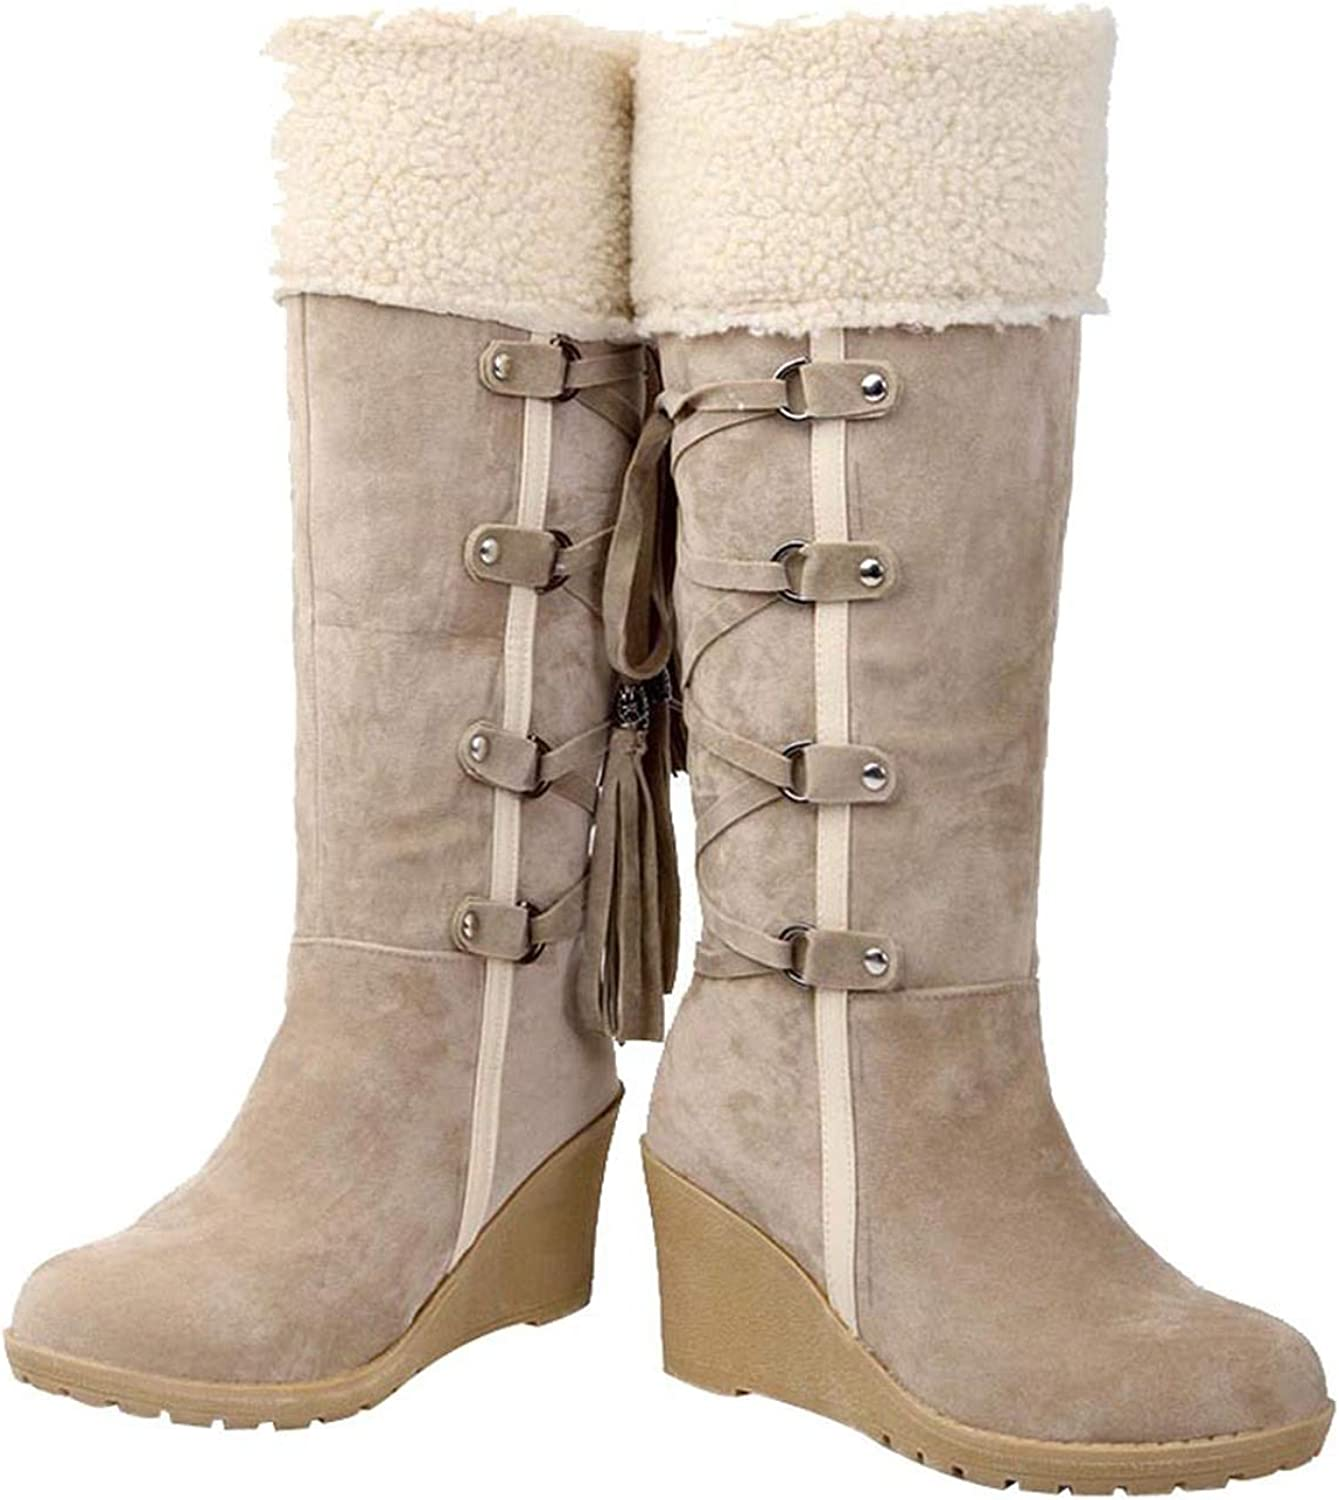 Tassels High Boots for Women Winter Snow Boots Martin Boots Winter Flats Fur-in Ankle Boots,A,37